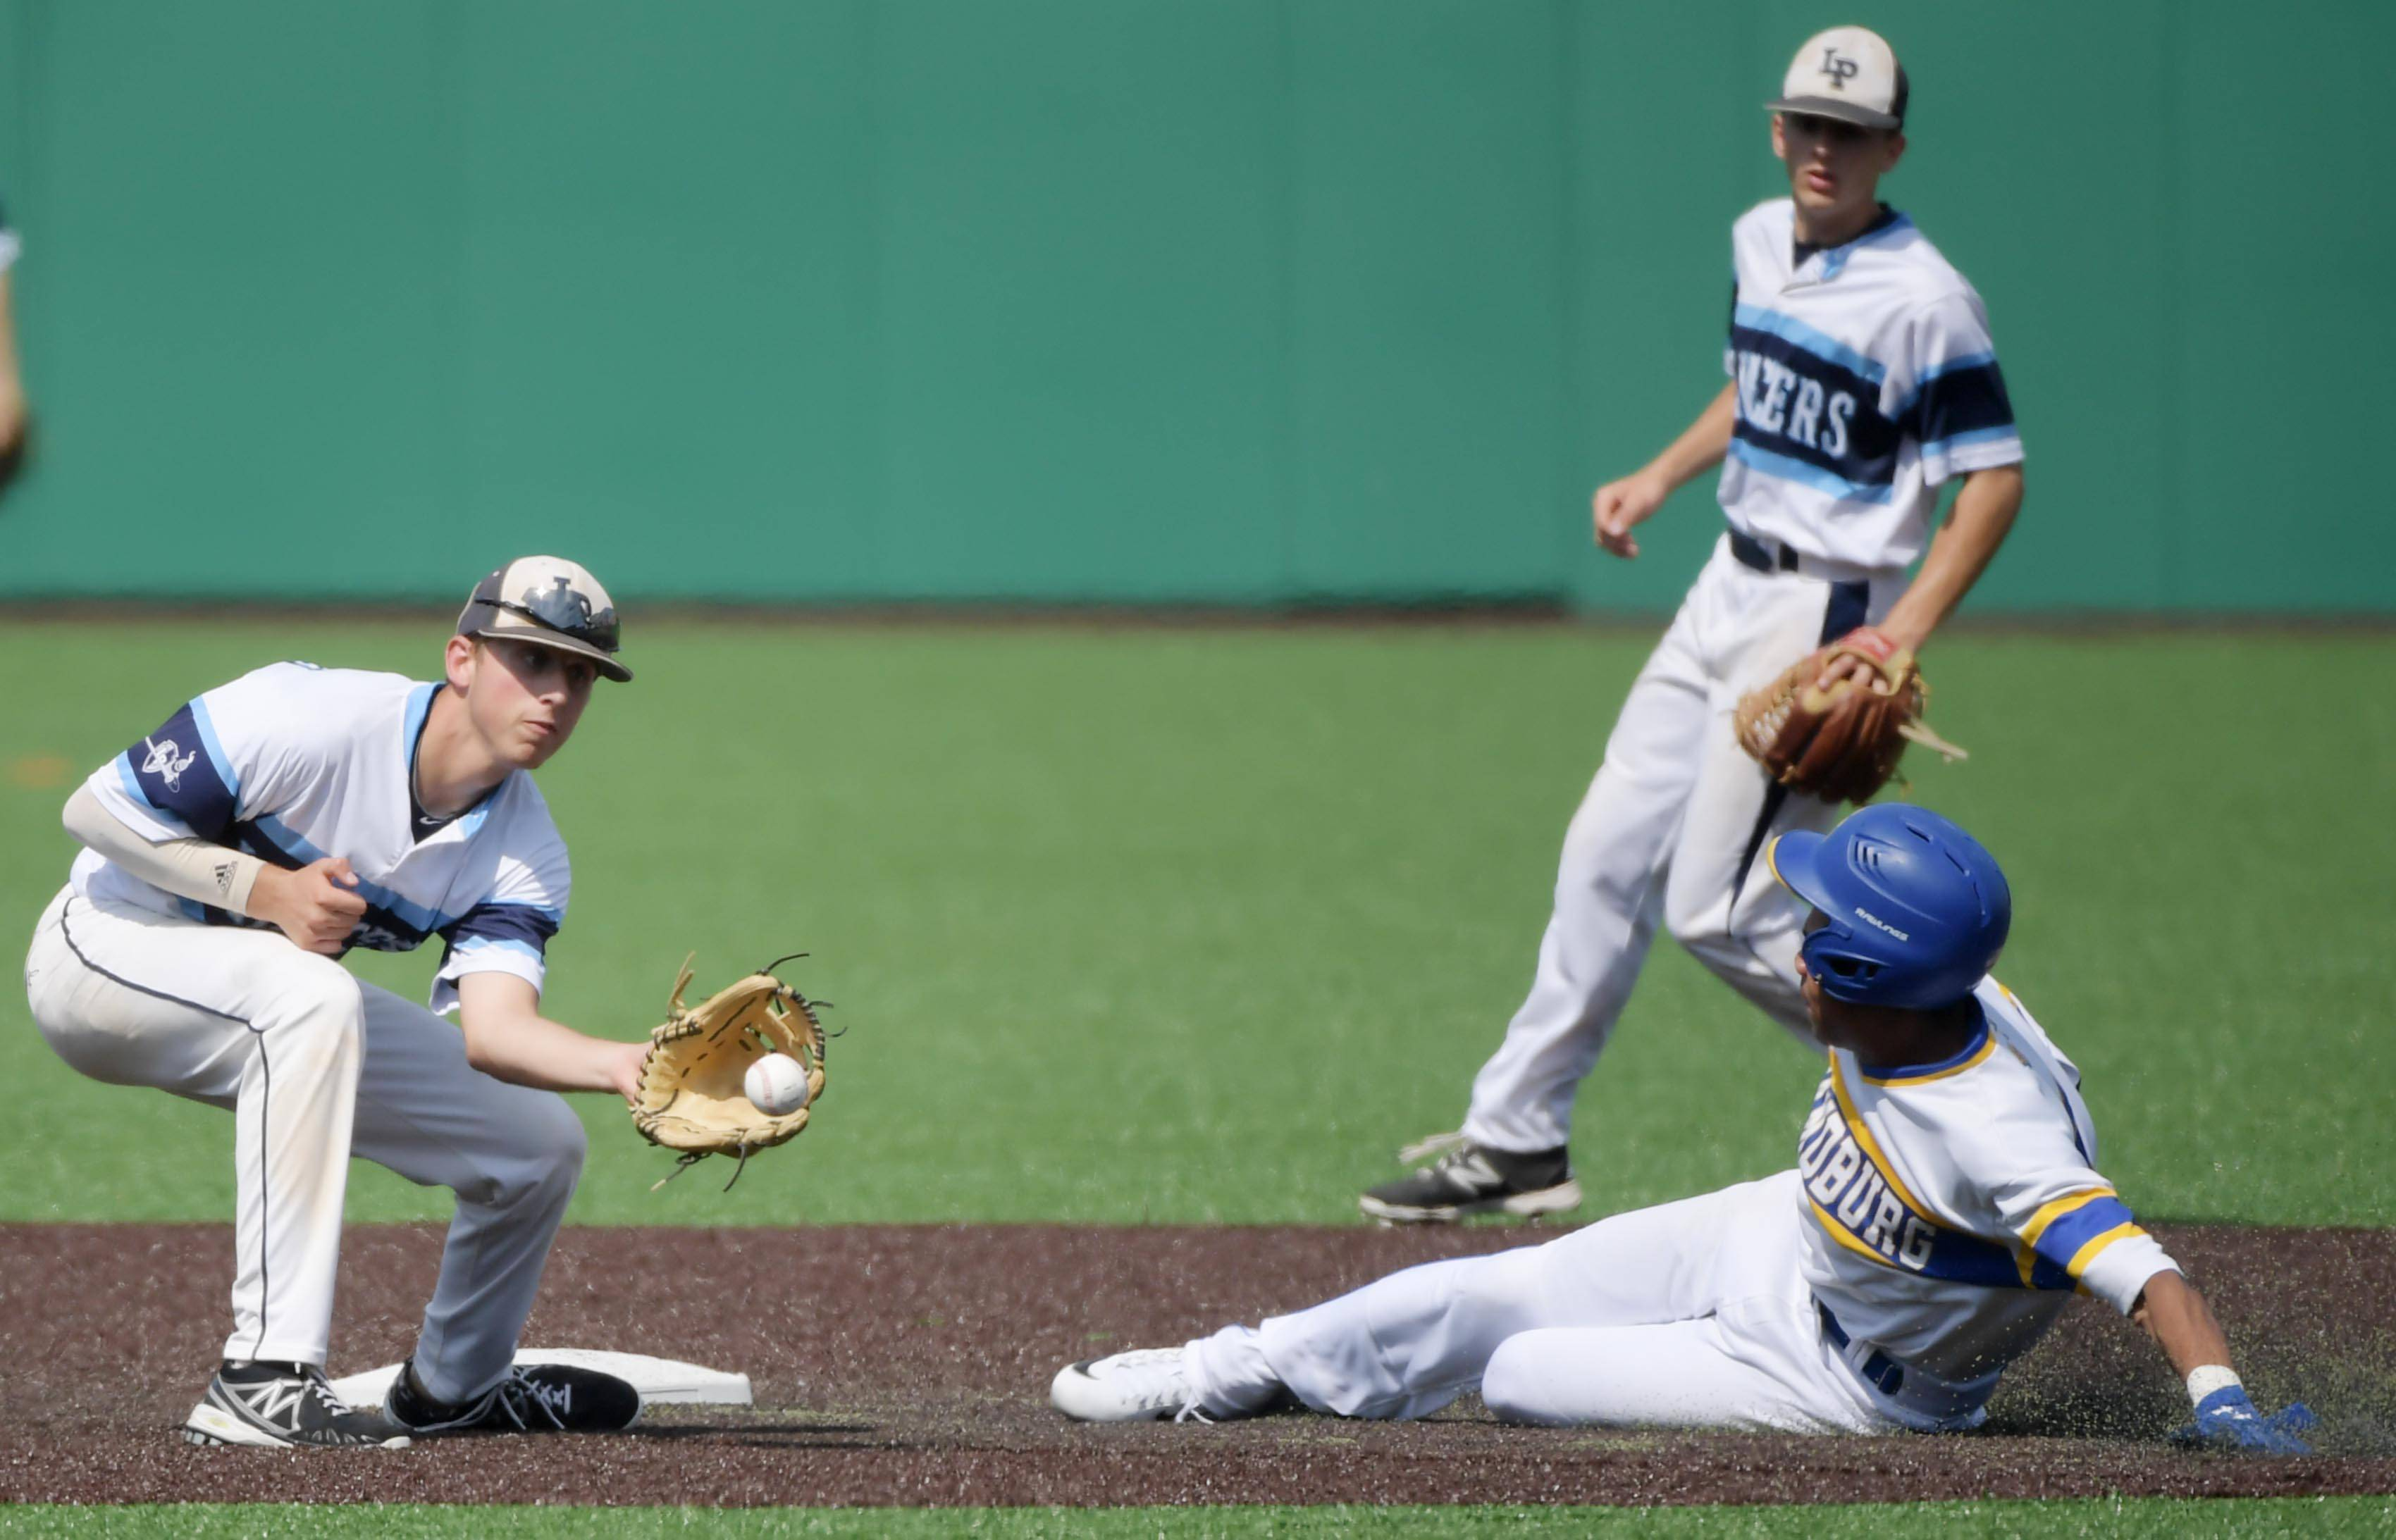 Lake Park's Anthony DeConcilis catches the throw from catcher Zach Aehlert as Sandburg's Ian Sanders steals second base in the Class 4A state baseball third place game at Route 66 Stadium in Joliet Saturday.